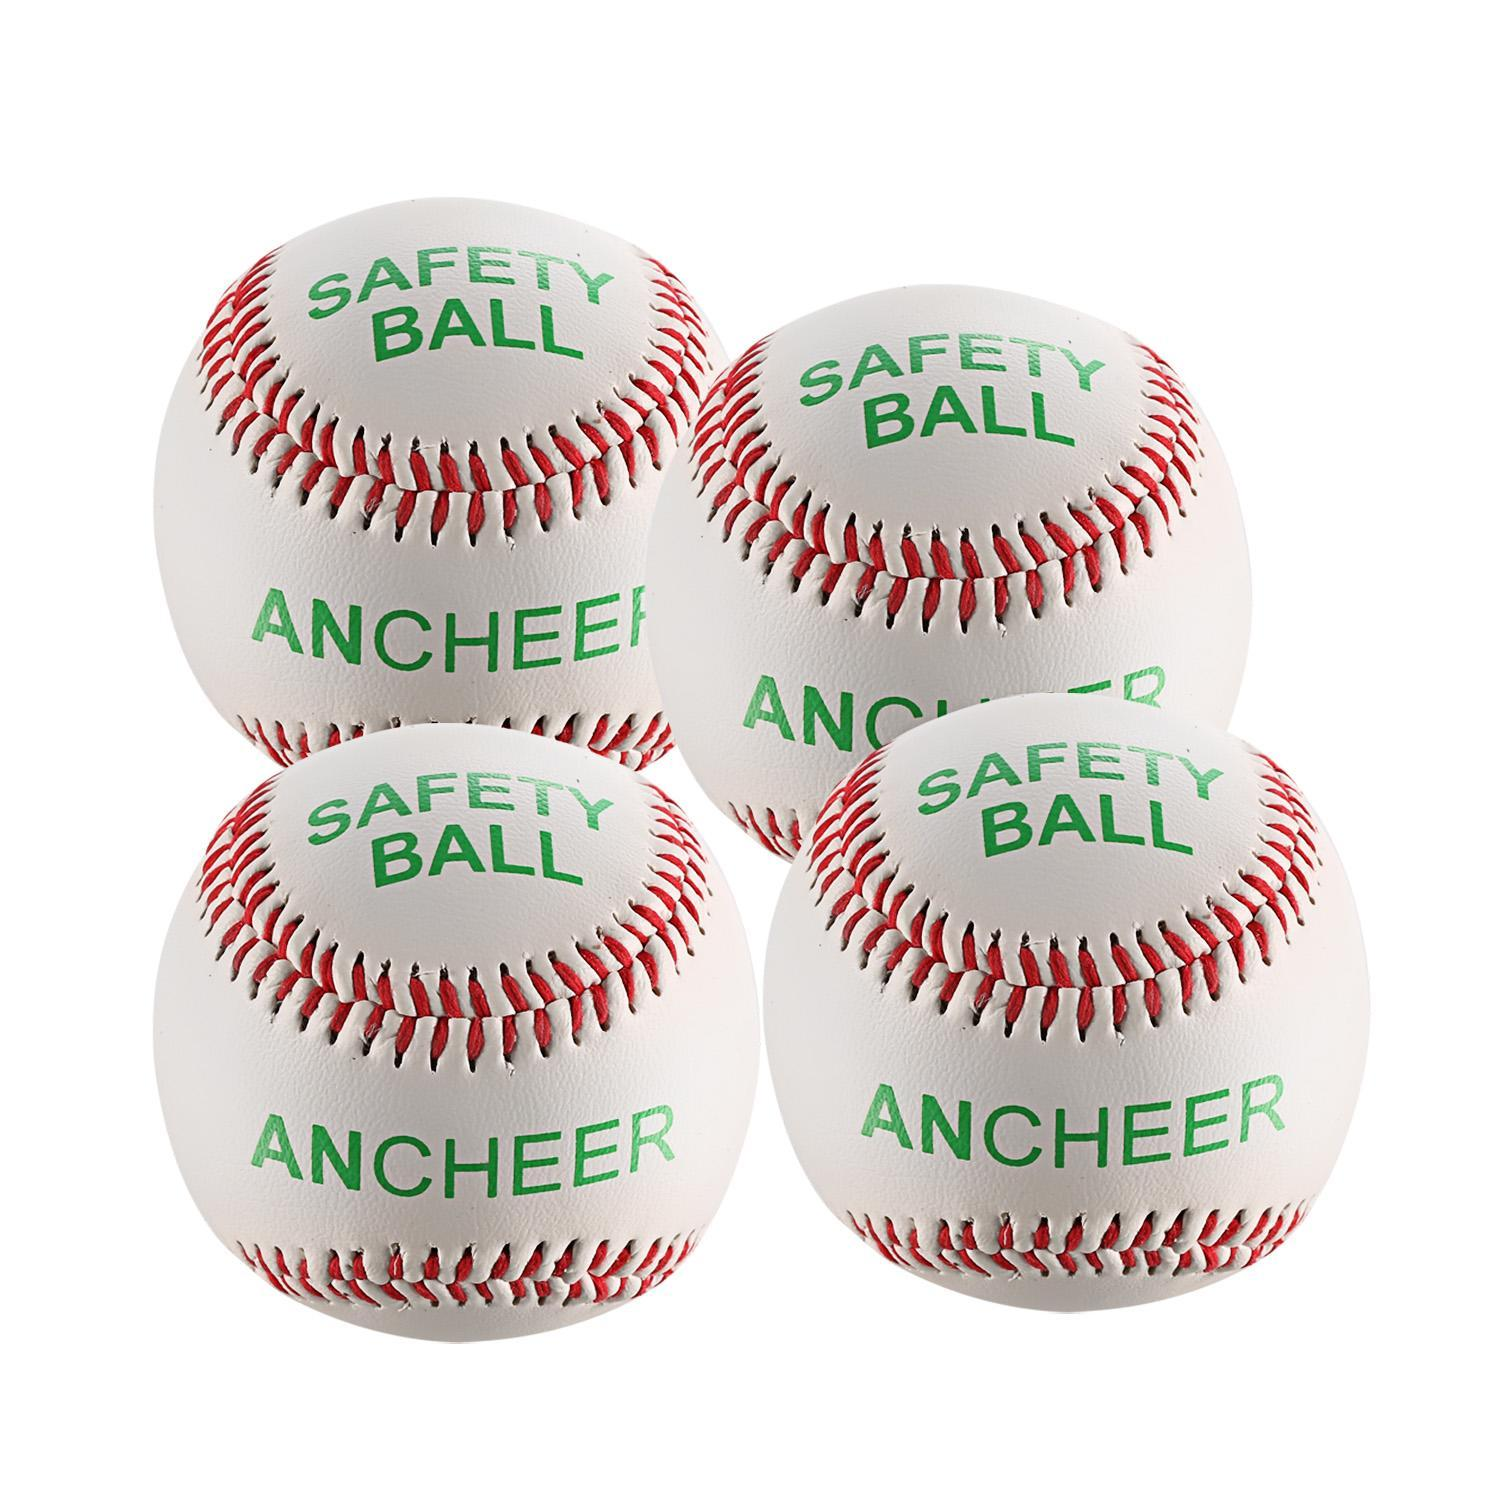 Clearance! Reduced Impact soft Compression Training Throwing Practice Safety Baseball HFON by